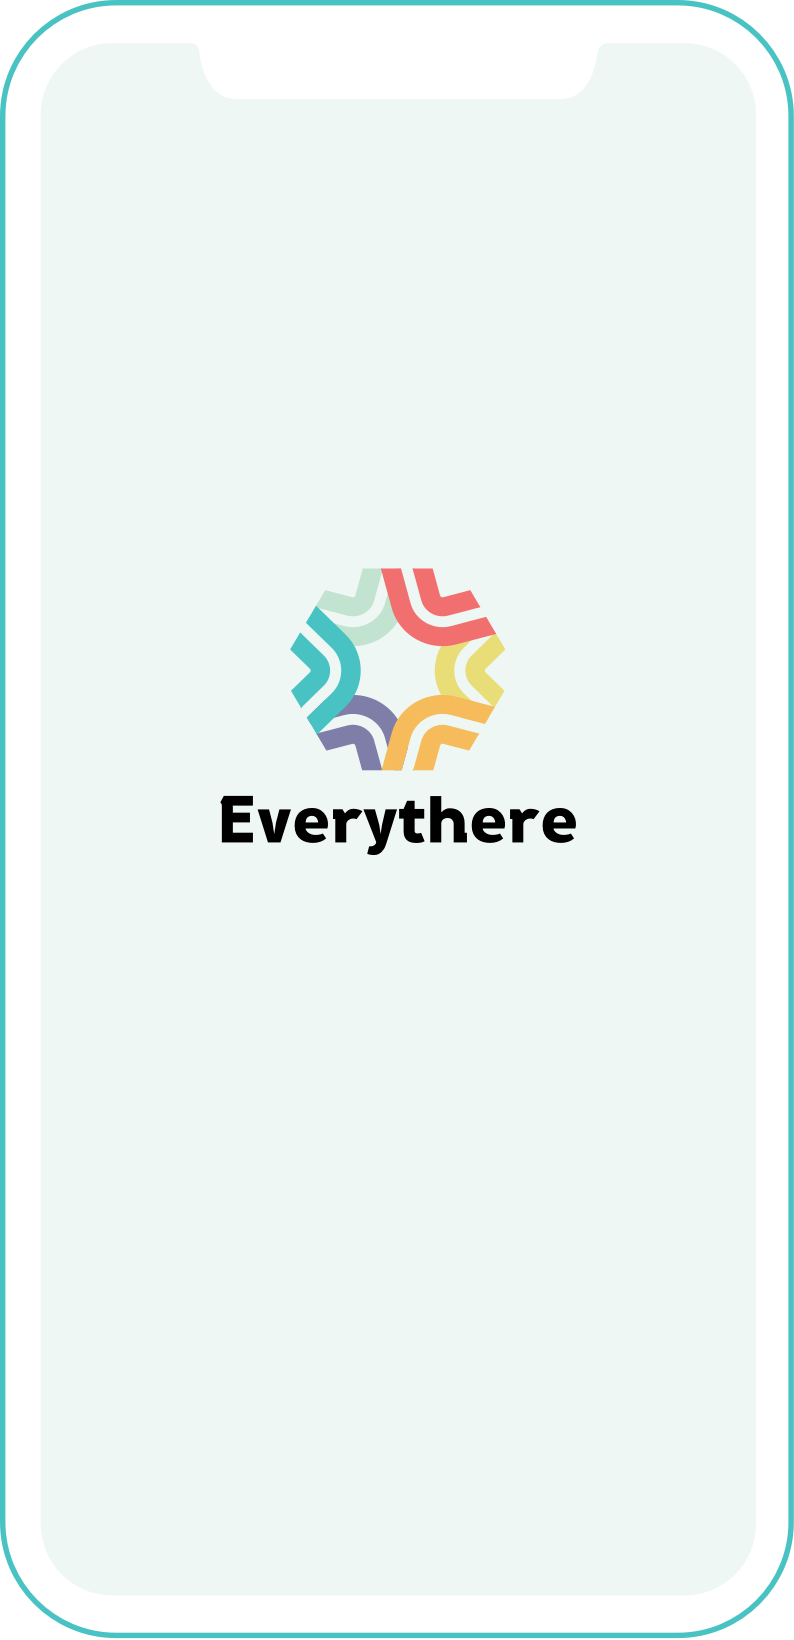 Everythere app icon display